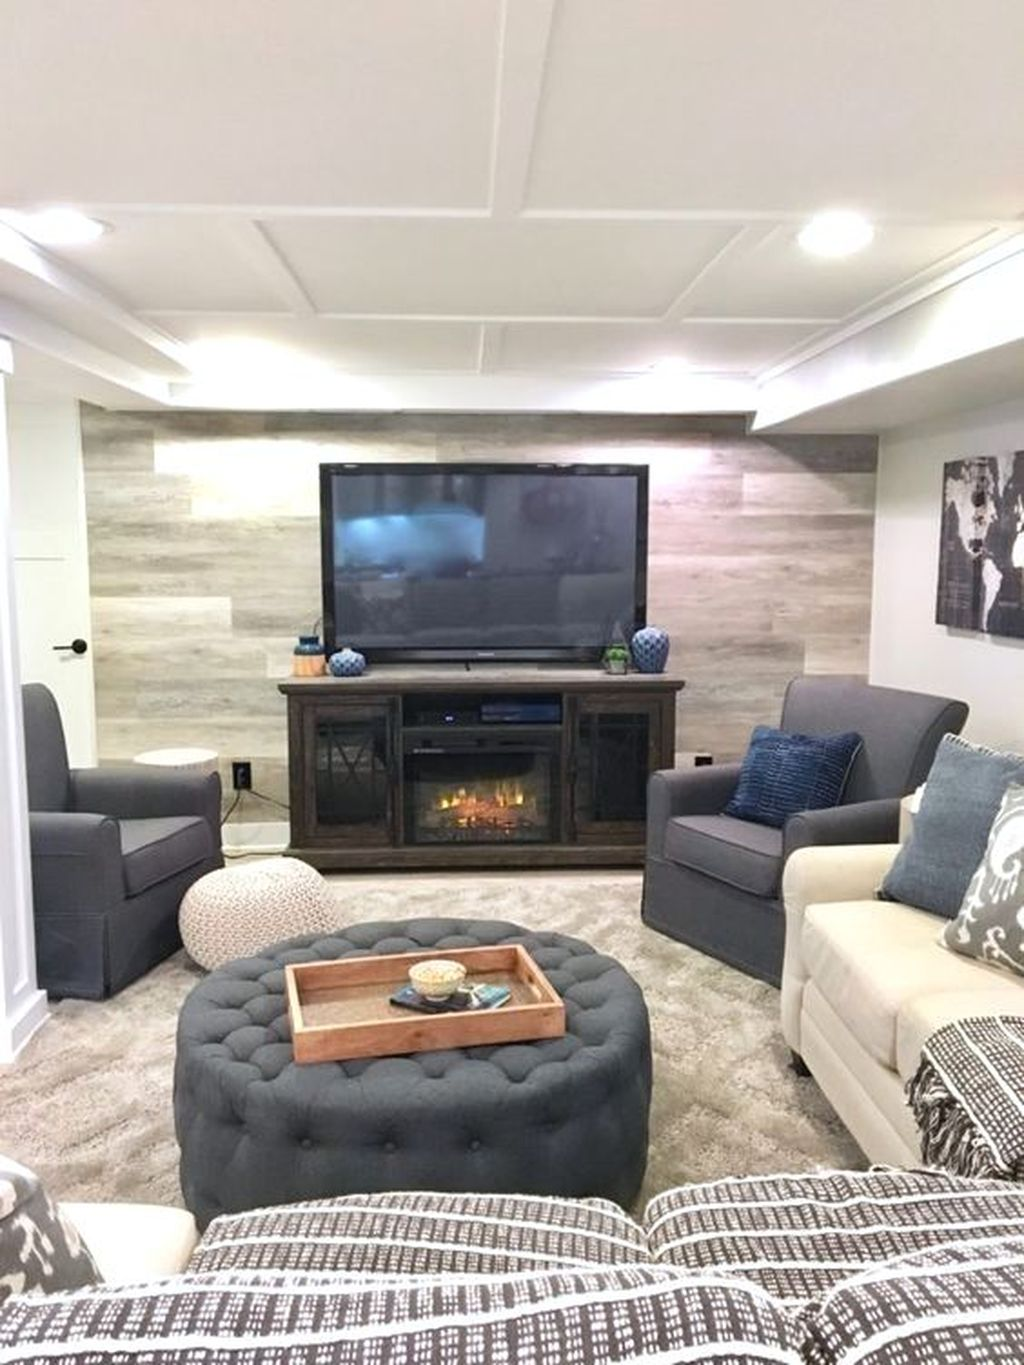 Stunning Basement Remodel Ideas Be A Beautiful Living Space 17